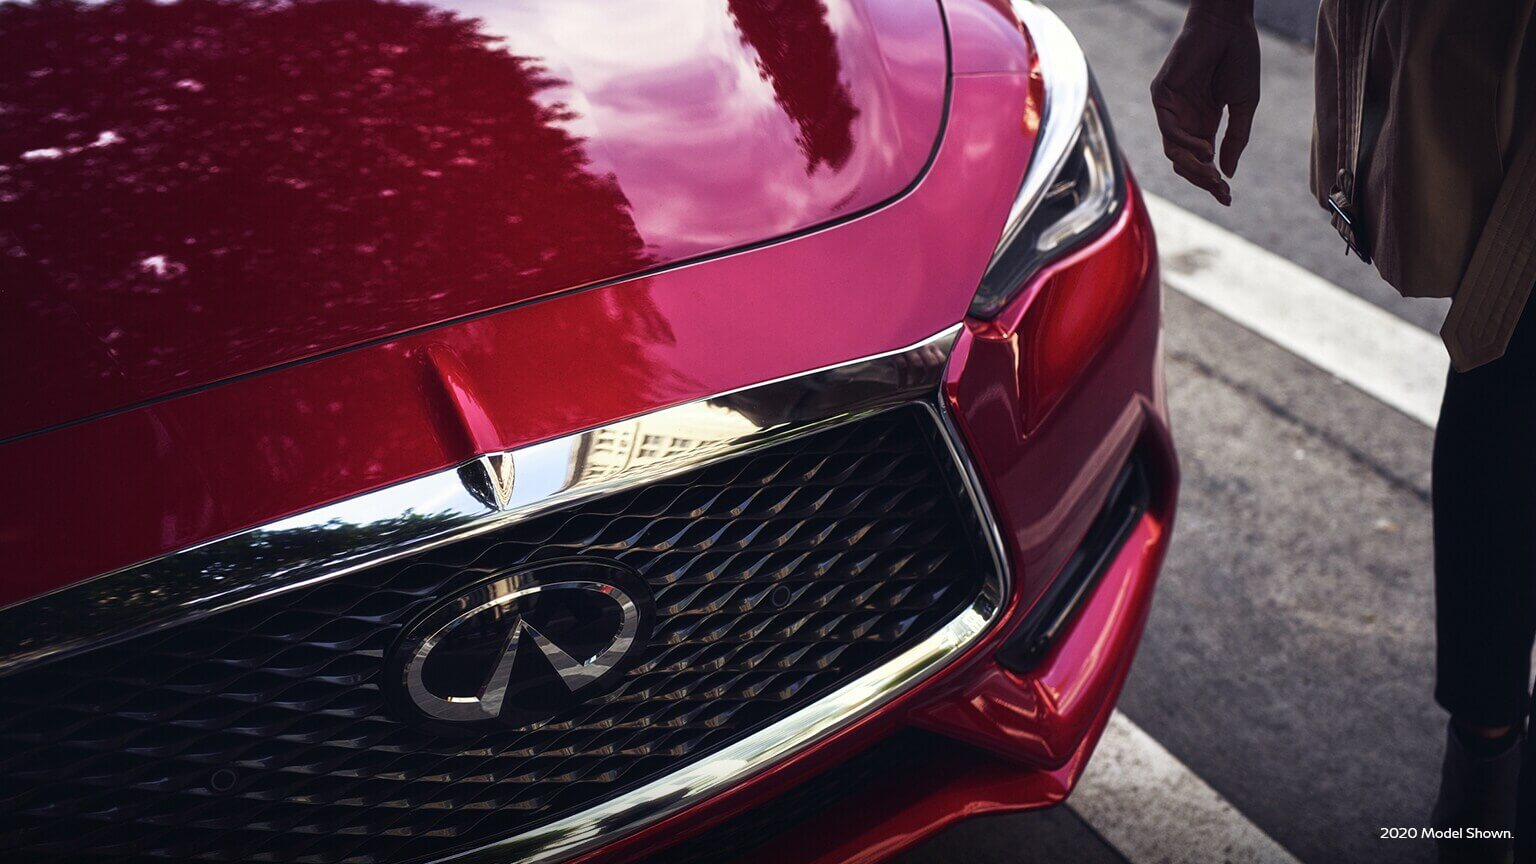 2021 Infiniti Q60 with signature elements including double arch grille